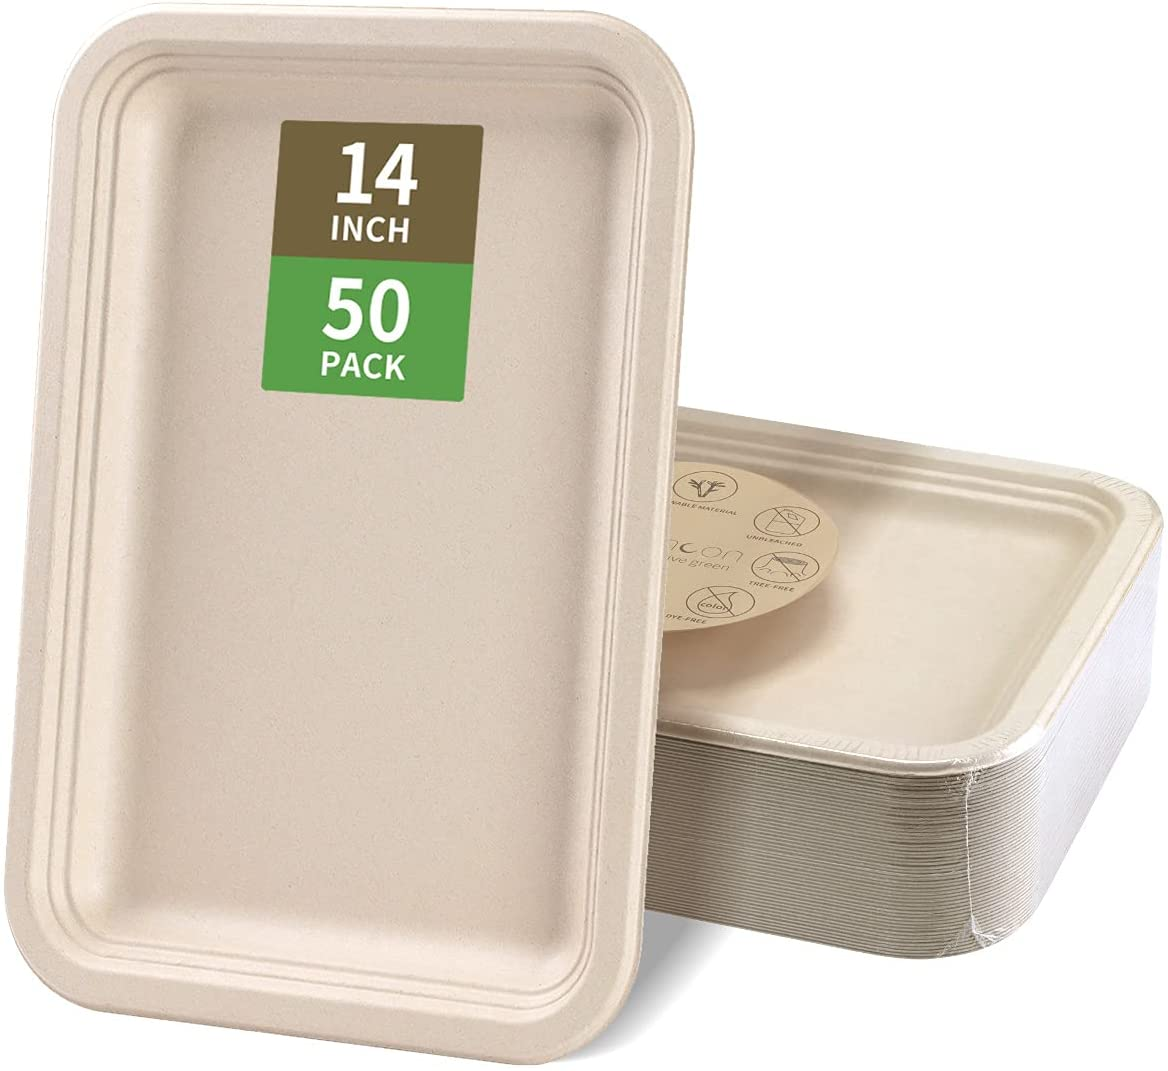 Bloomoon 50 Pack 14 Inch Heavy-Duty Disposable Food Trays, 100% Biodegradable Sugarcane Bagasse Rectangle Large Plates Eco Party Supplies for Seafood, BBQ, Picnic